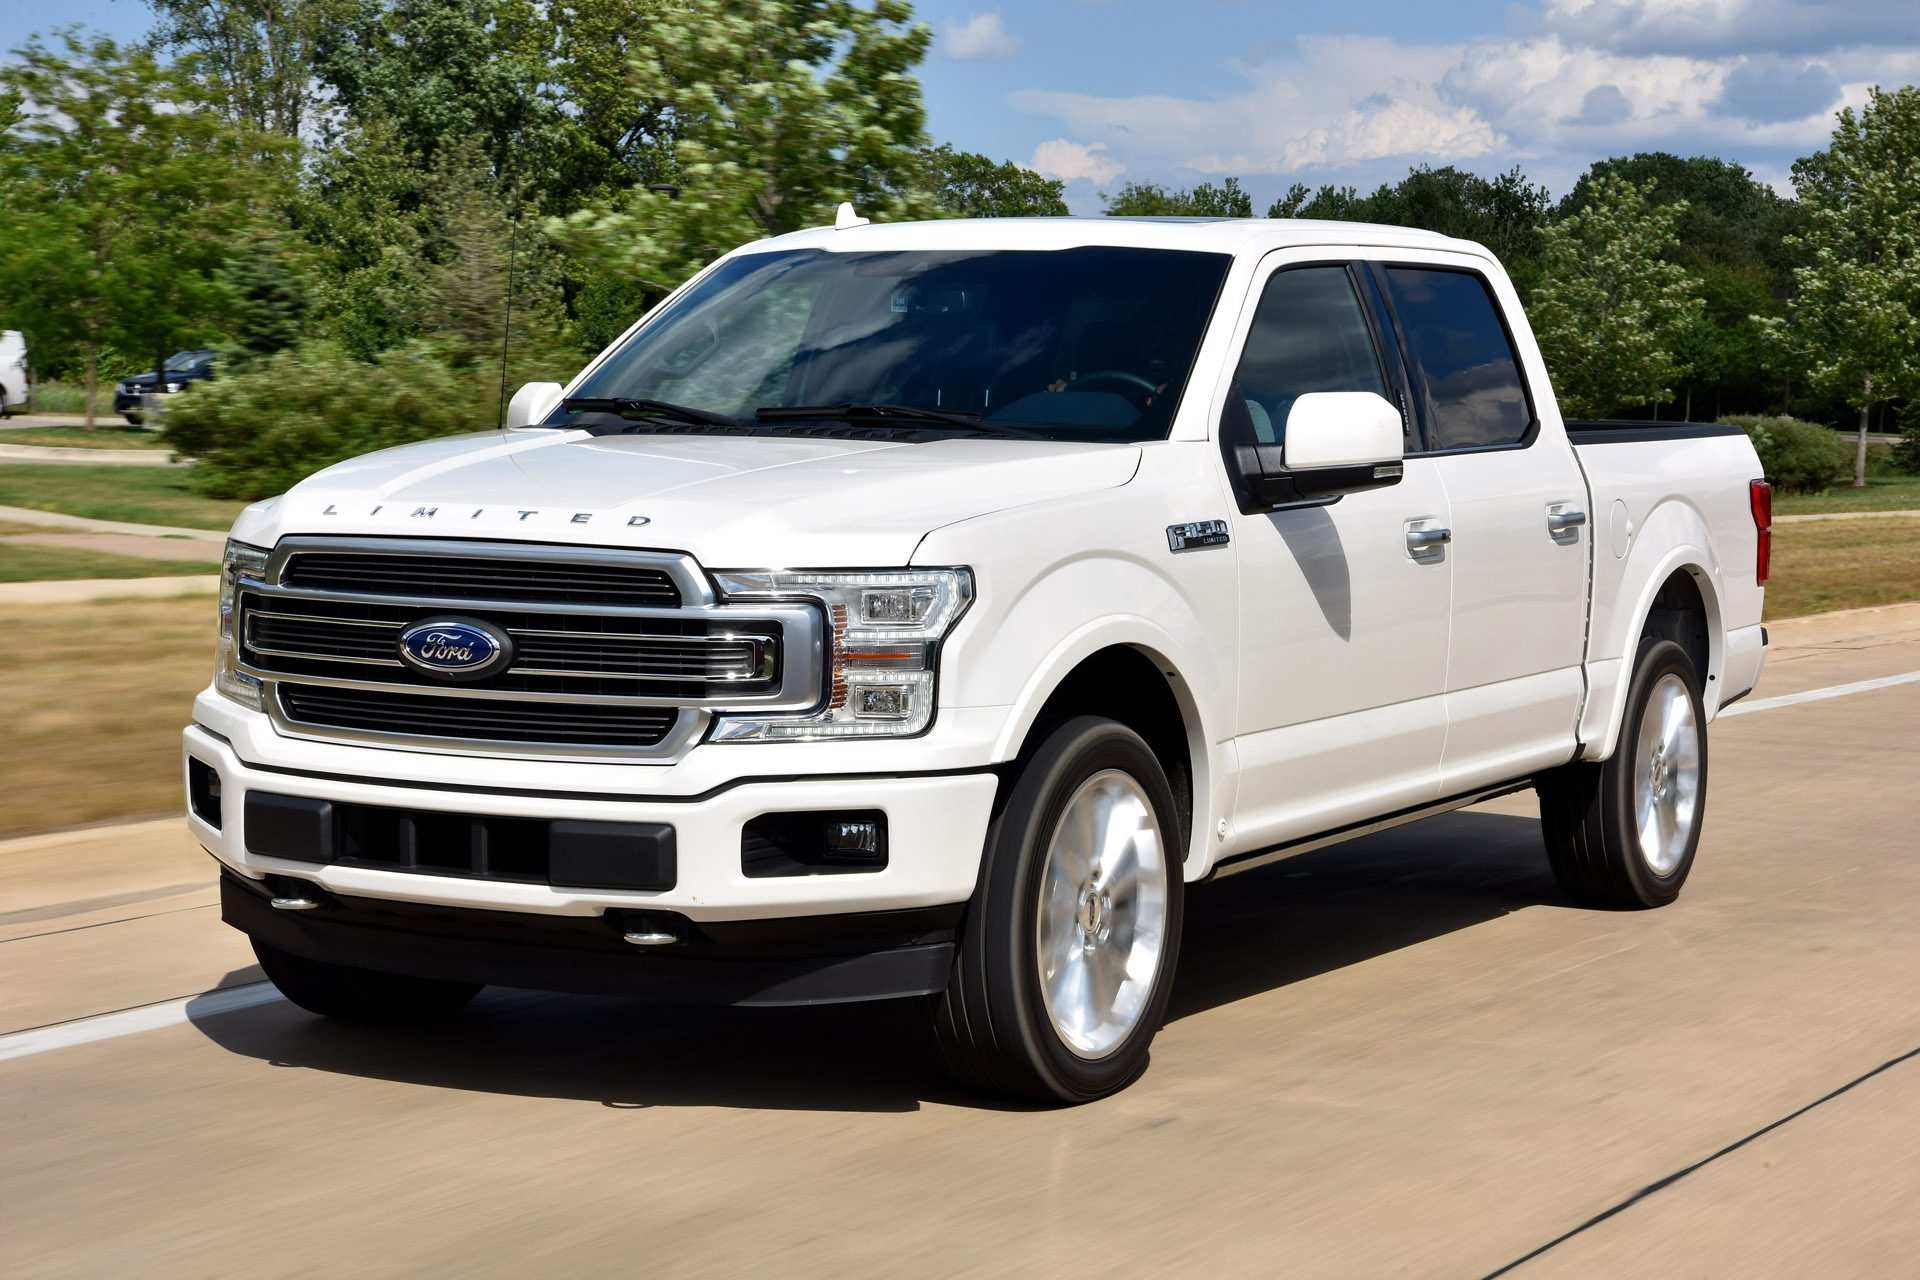 89 Gallery of 2019 Ford F 150 Hybrid Research New with 2019 Ford F 150 Hybrid